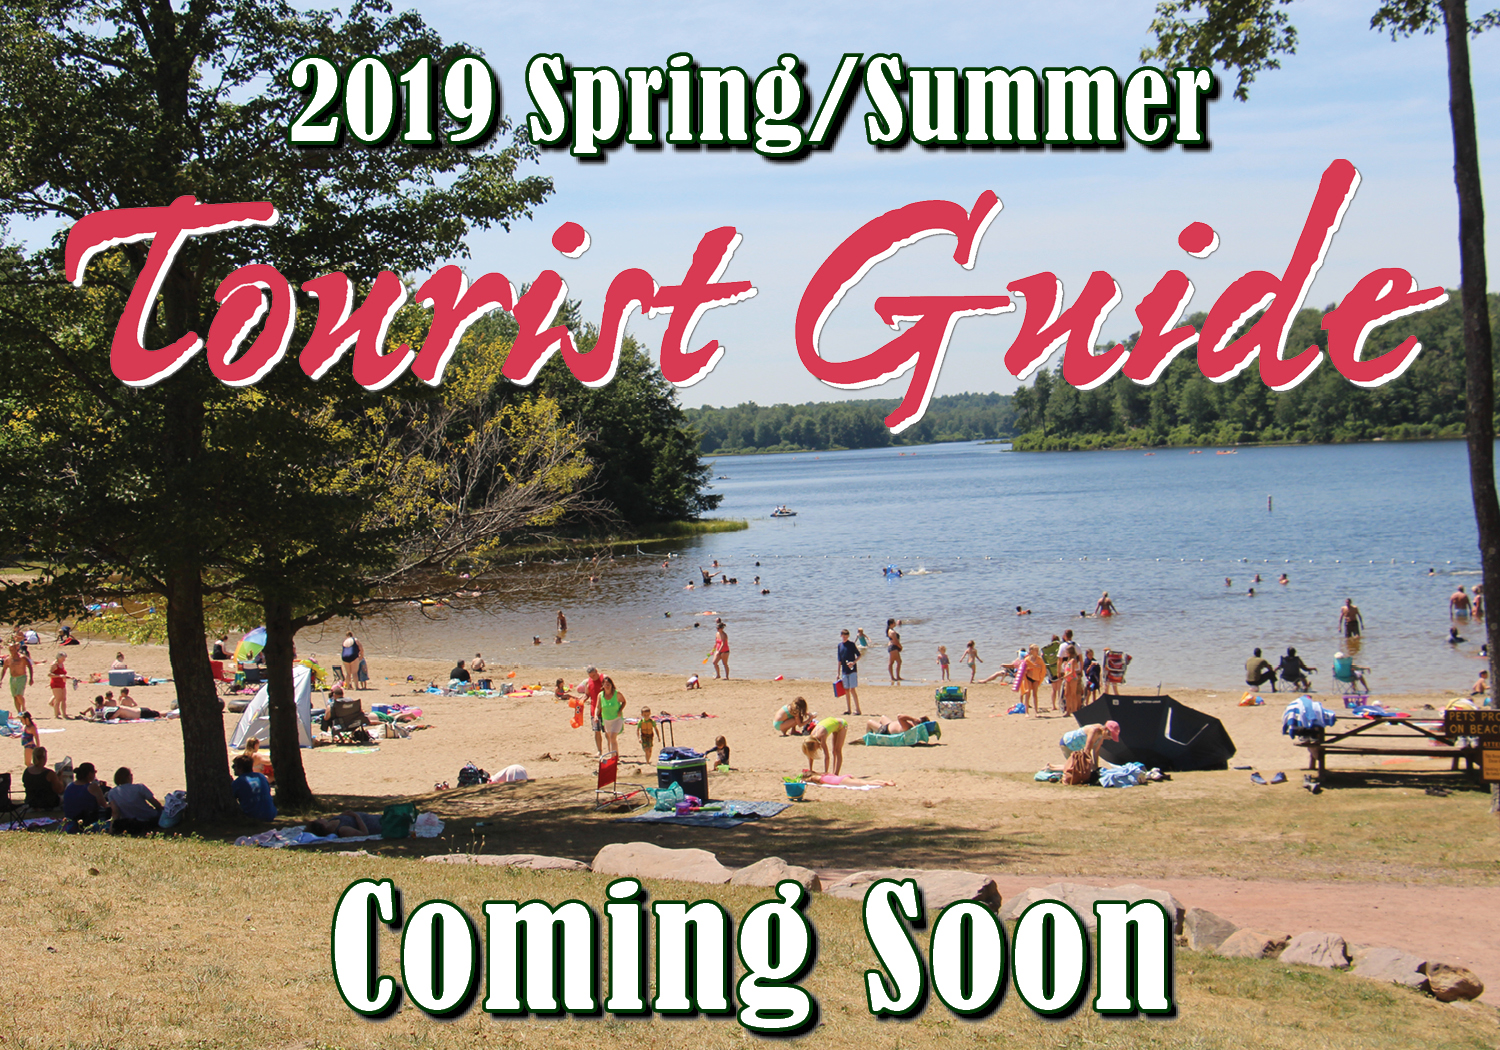 Spring/Summer Tourist Guide